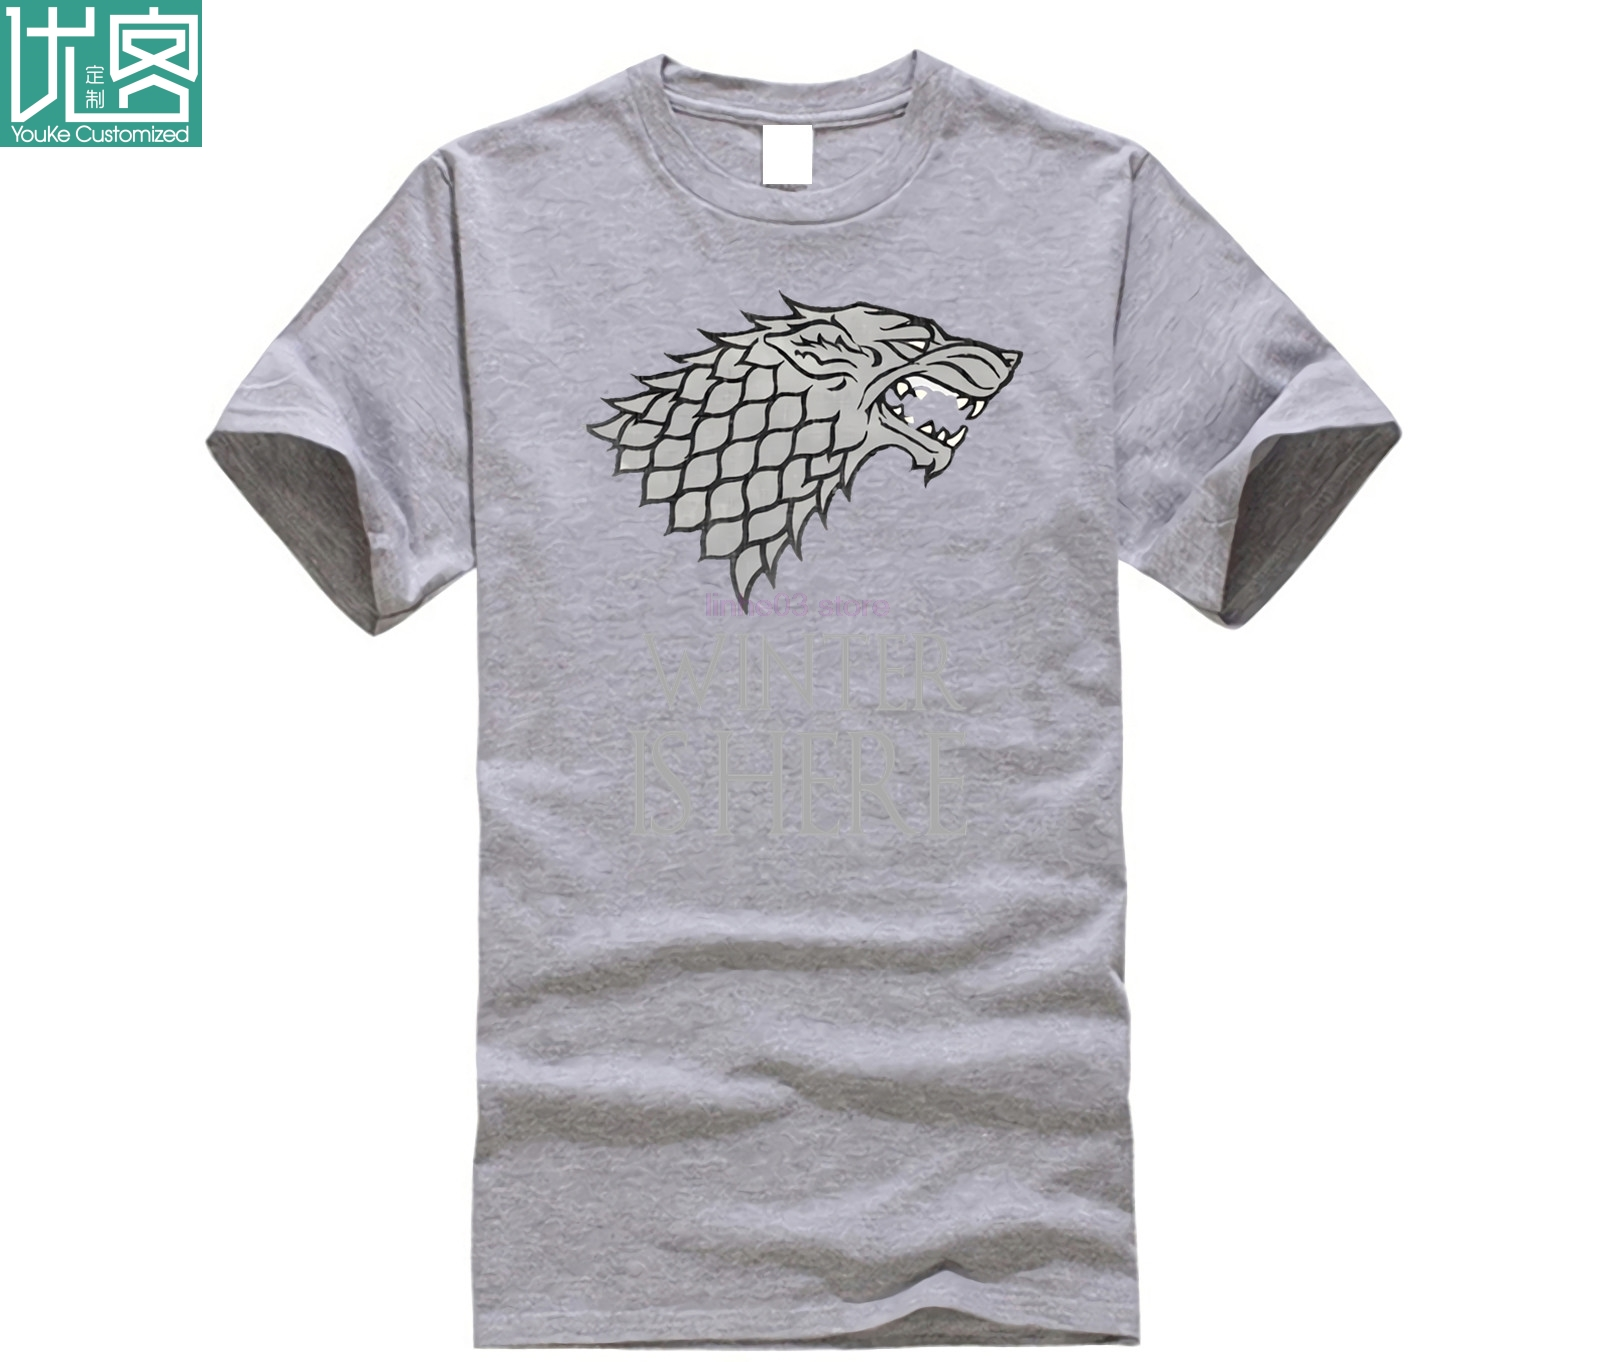 Game of Thrones Winter Is Here Stark Winterfell Wolf GOT Fantasy Black T Shirt High Quality Casual Printing Tee T Shirt in T Shirts from Men 39 s Clothing